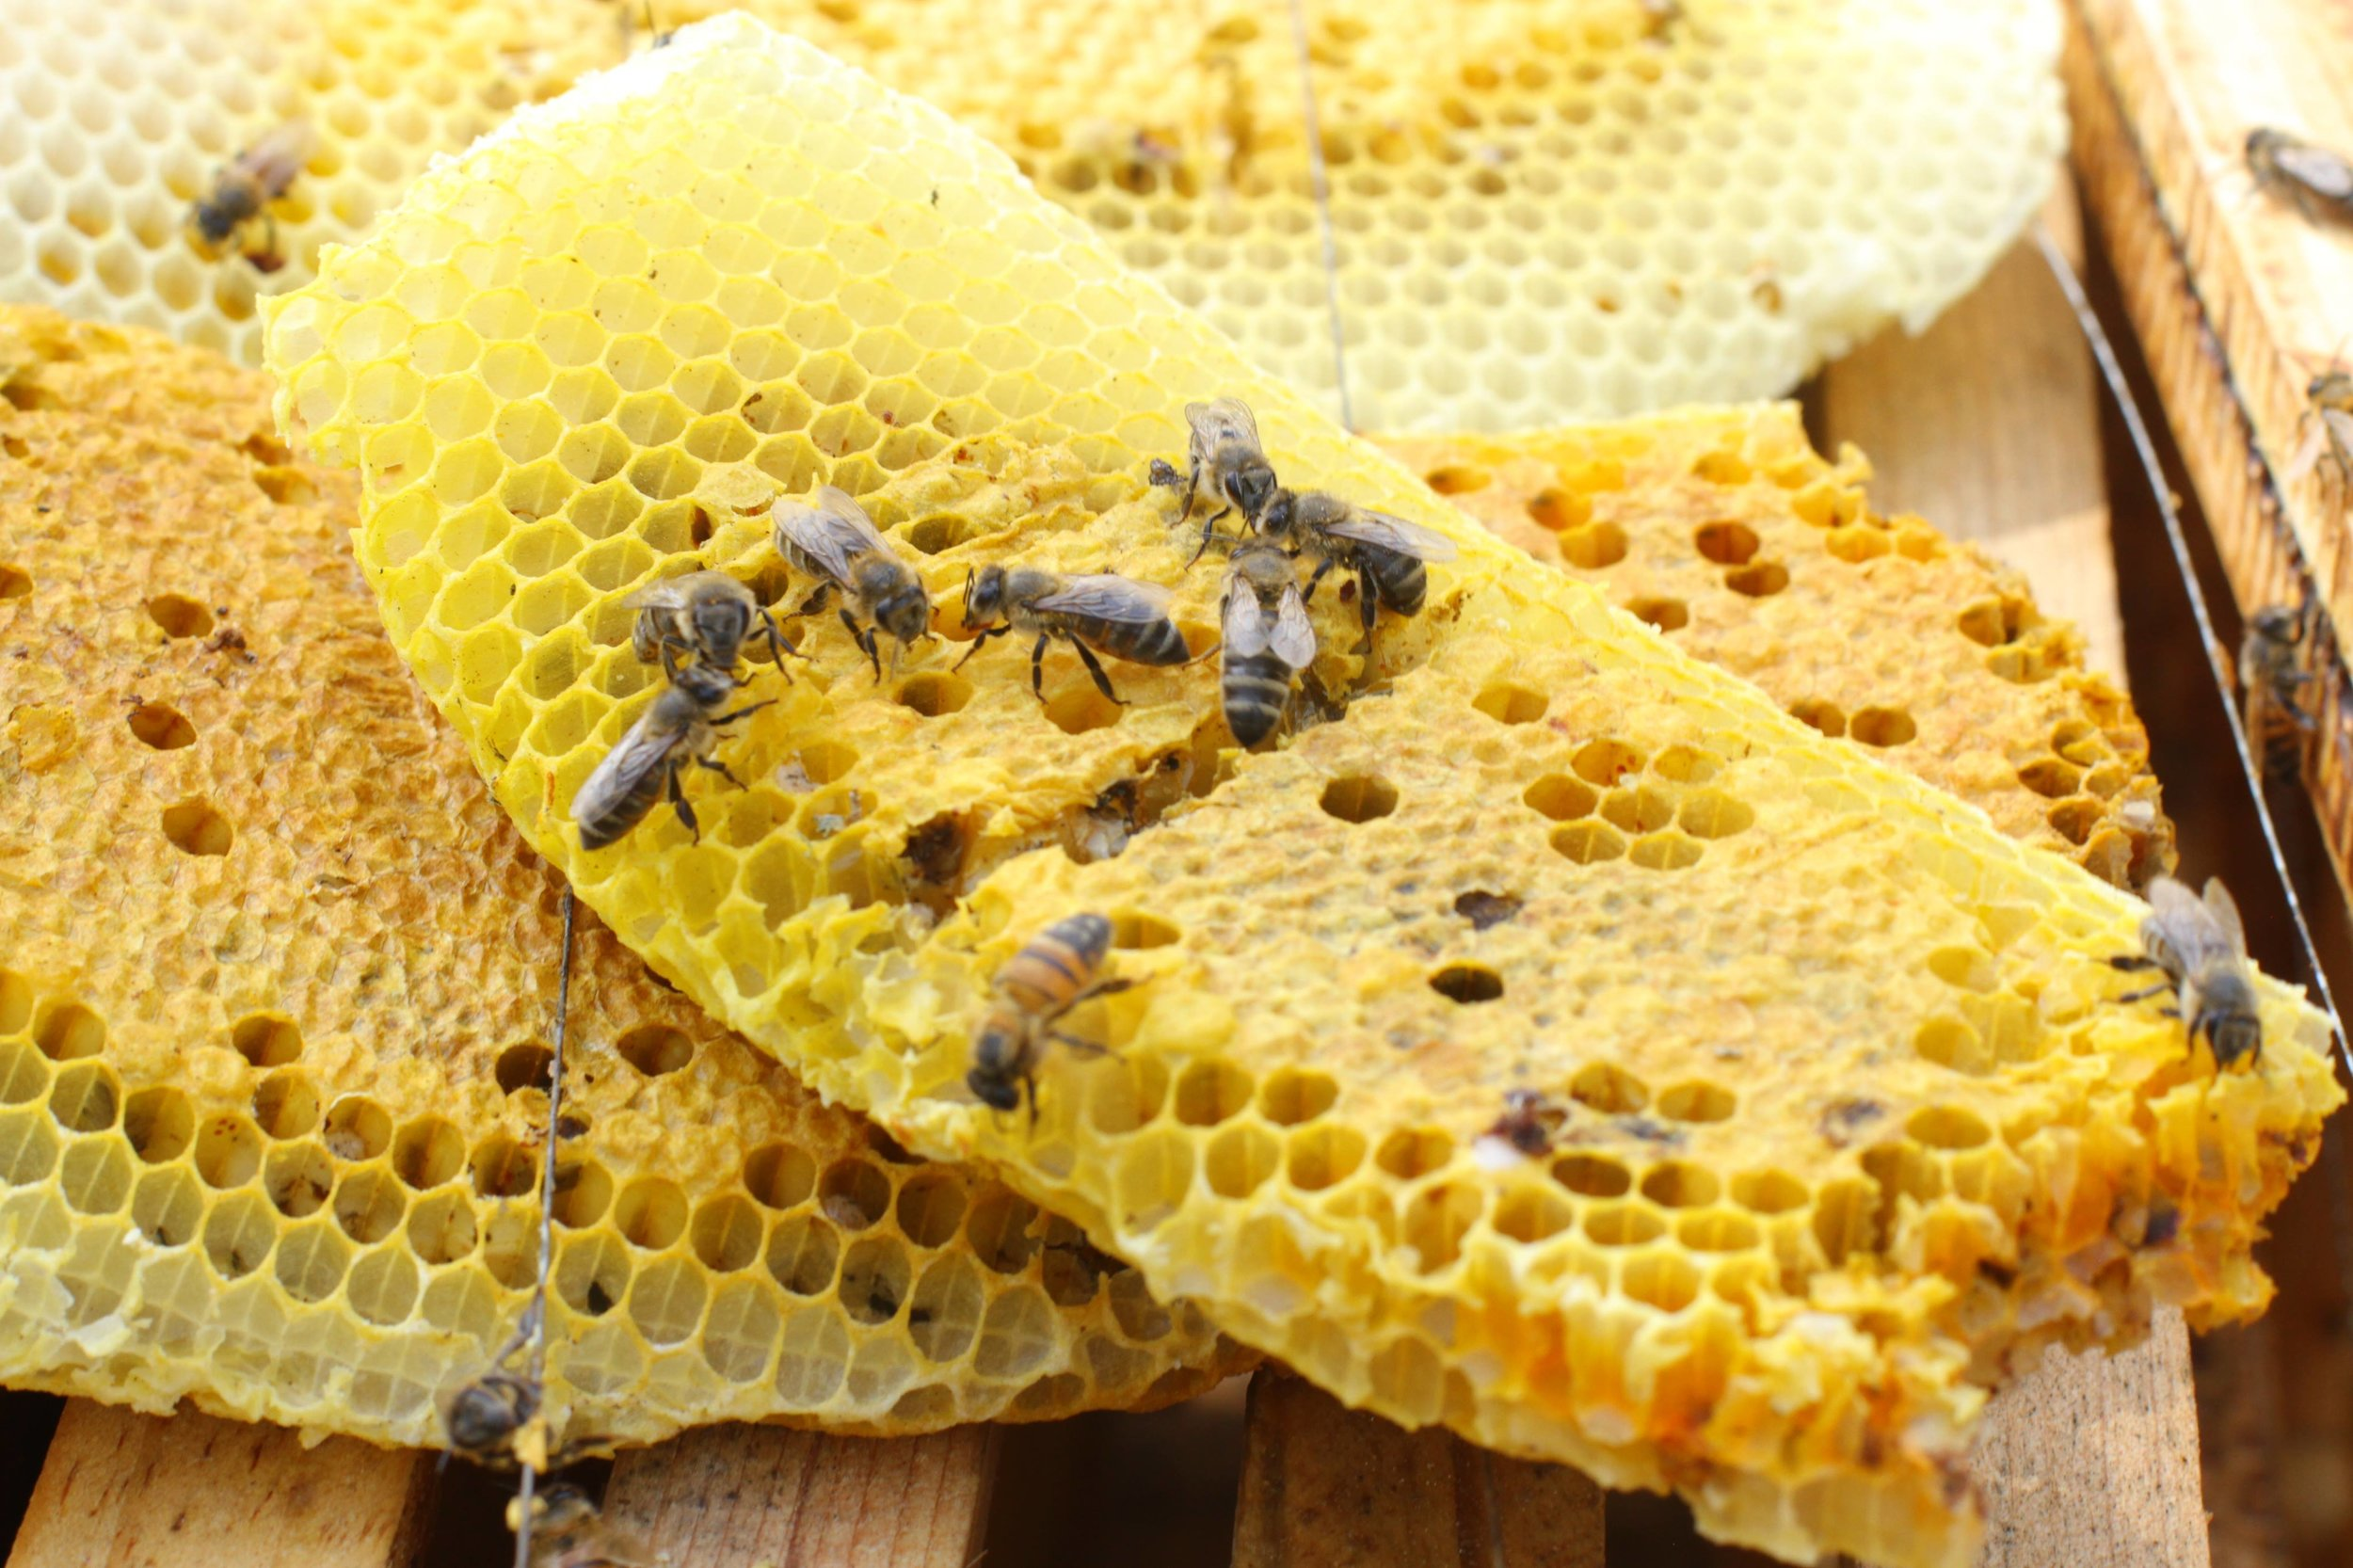 Natural honey was the basis for an intoxicating drink used by the ancient Maya.